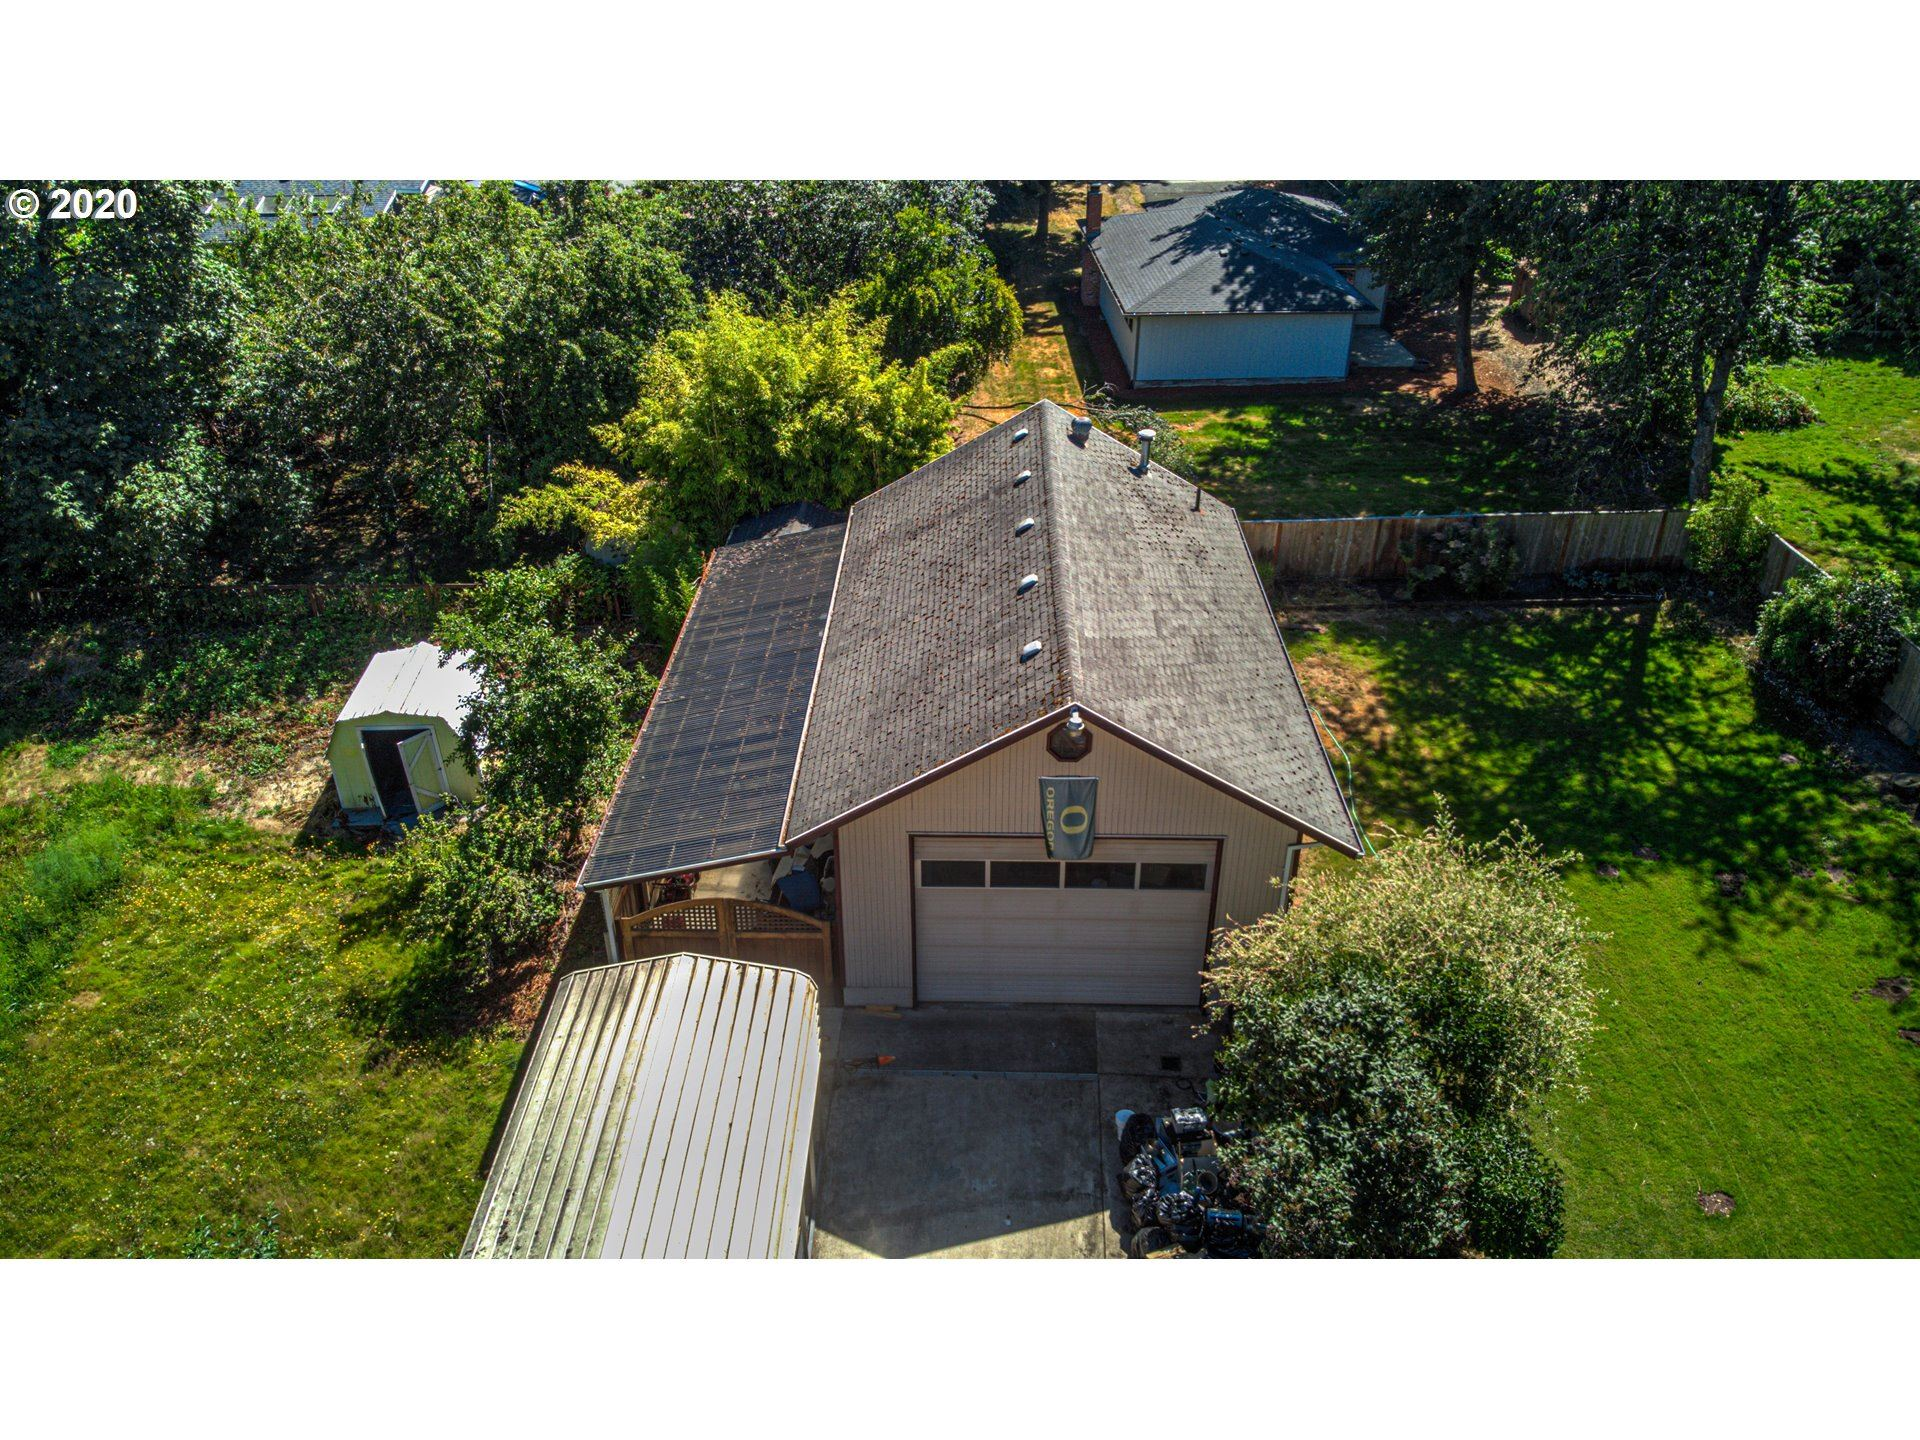 8520 SW 54TH AVE, Portland, OR 97219 - MLS#: 20492175